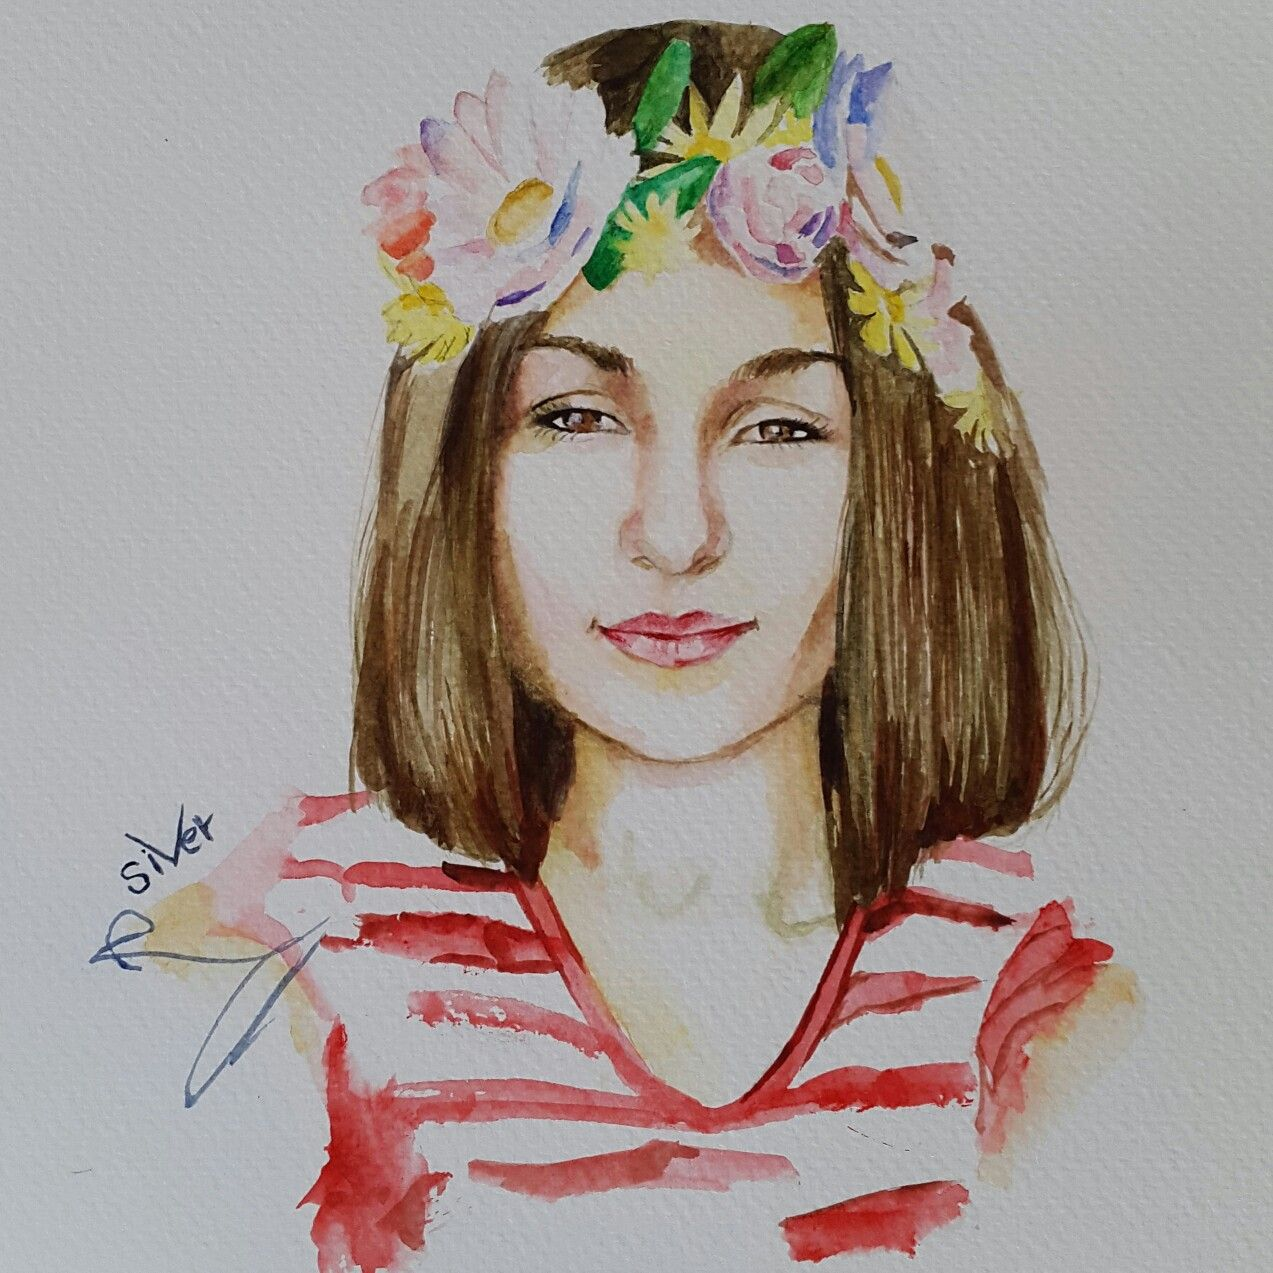 watercolor portrait girl snapchat filter painting by siver